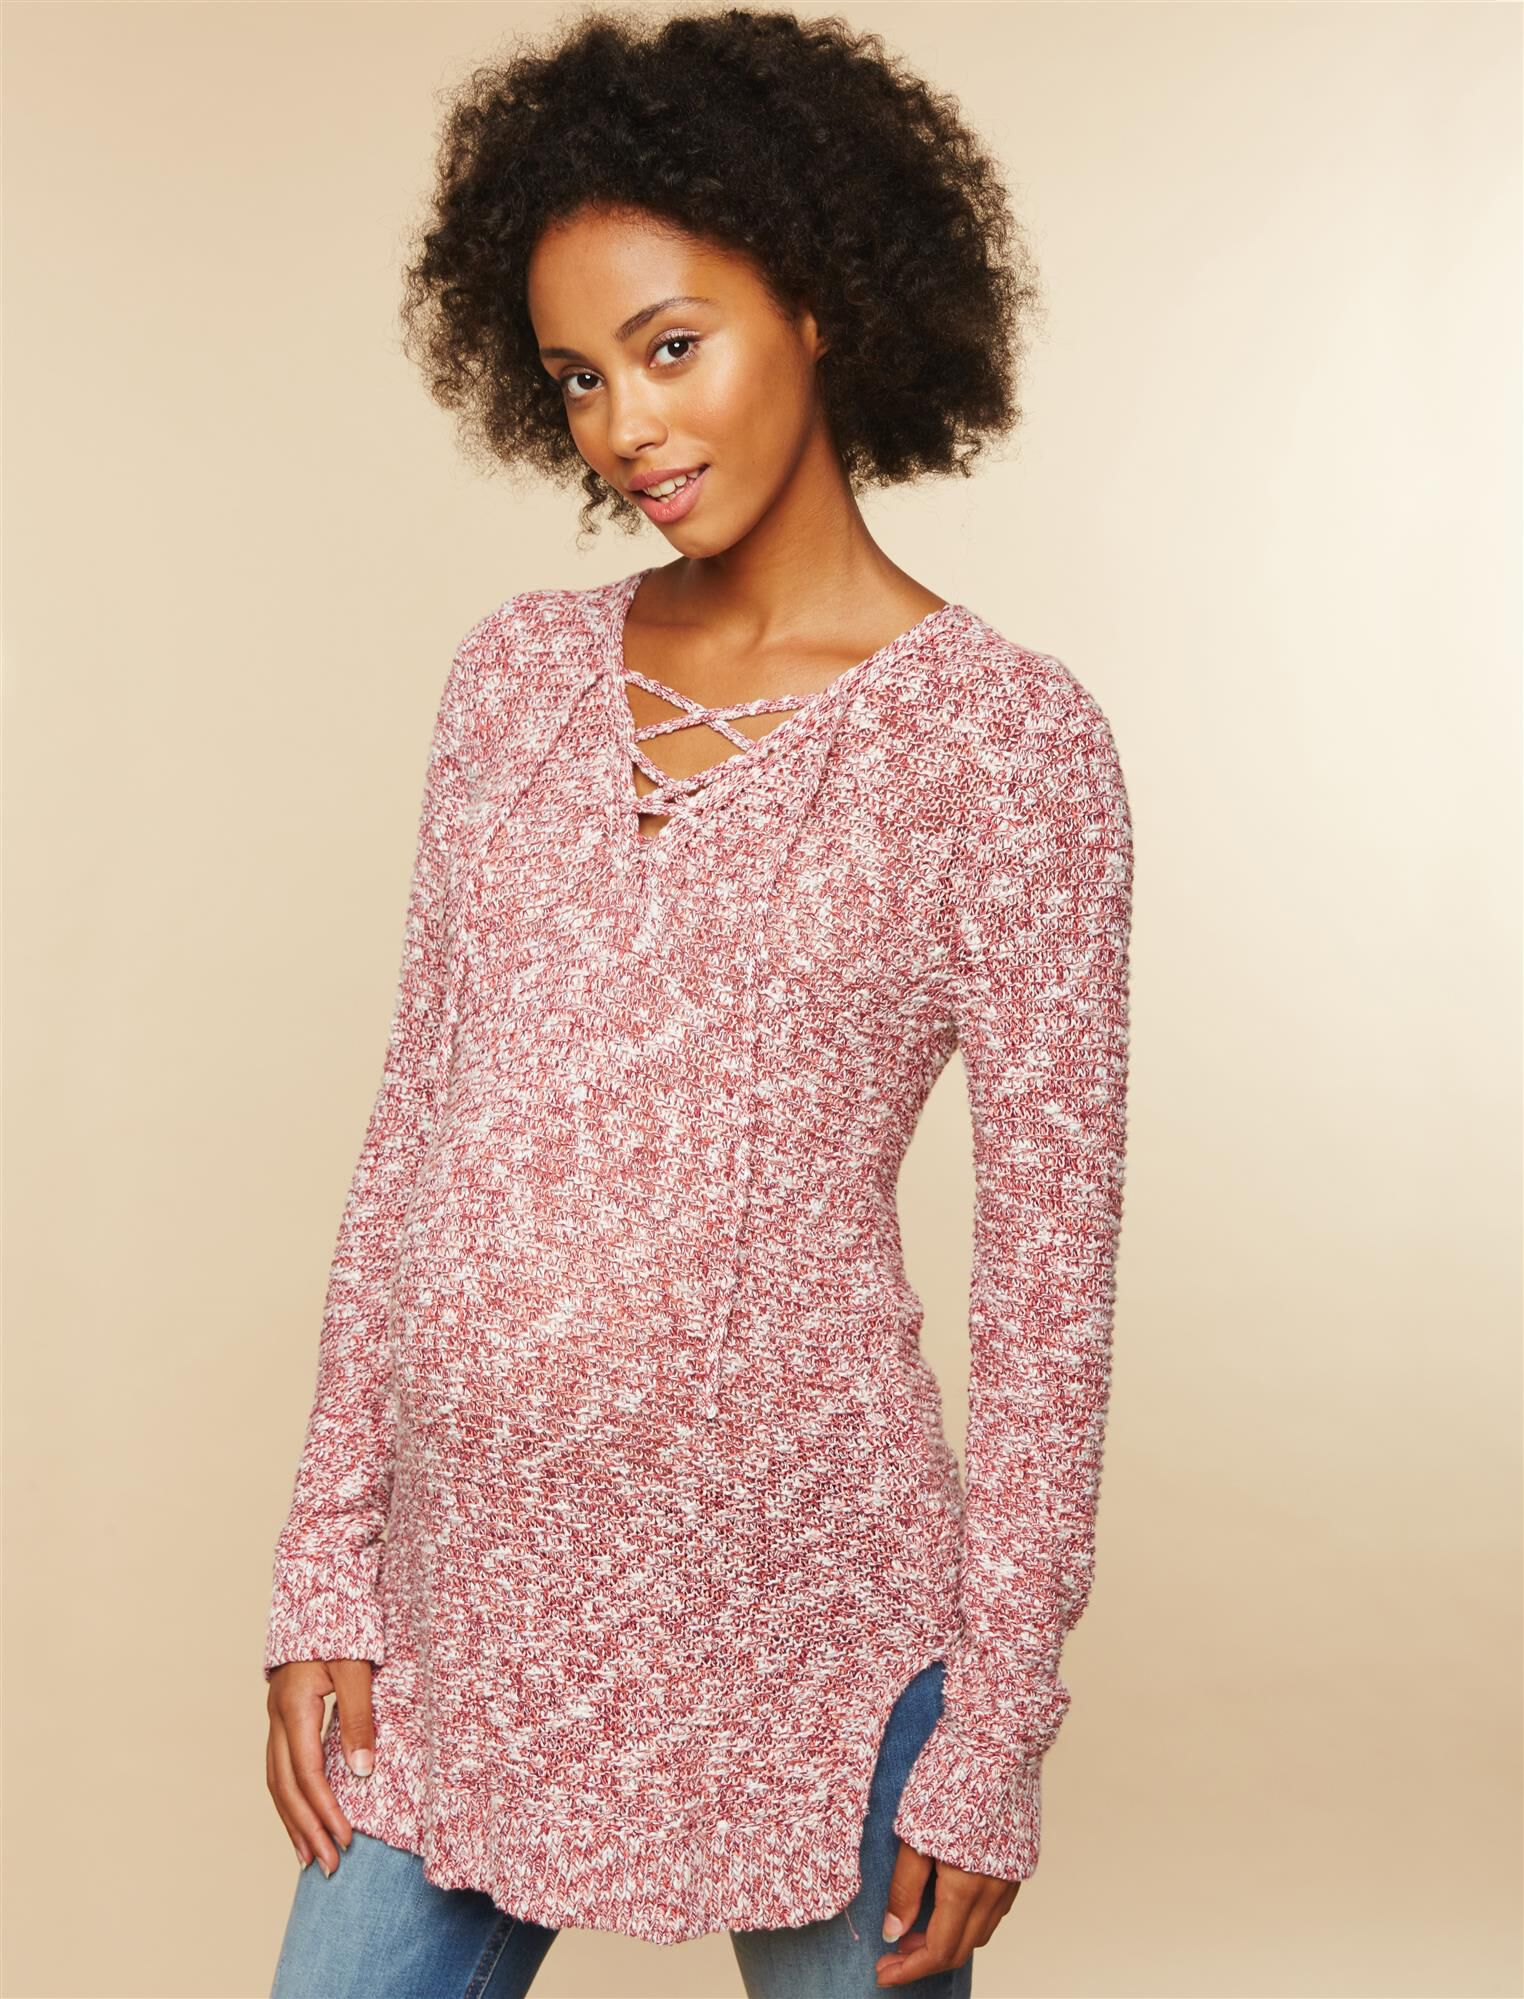 Lace Up Marl Maternity Sweater